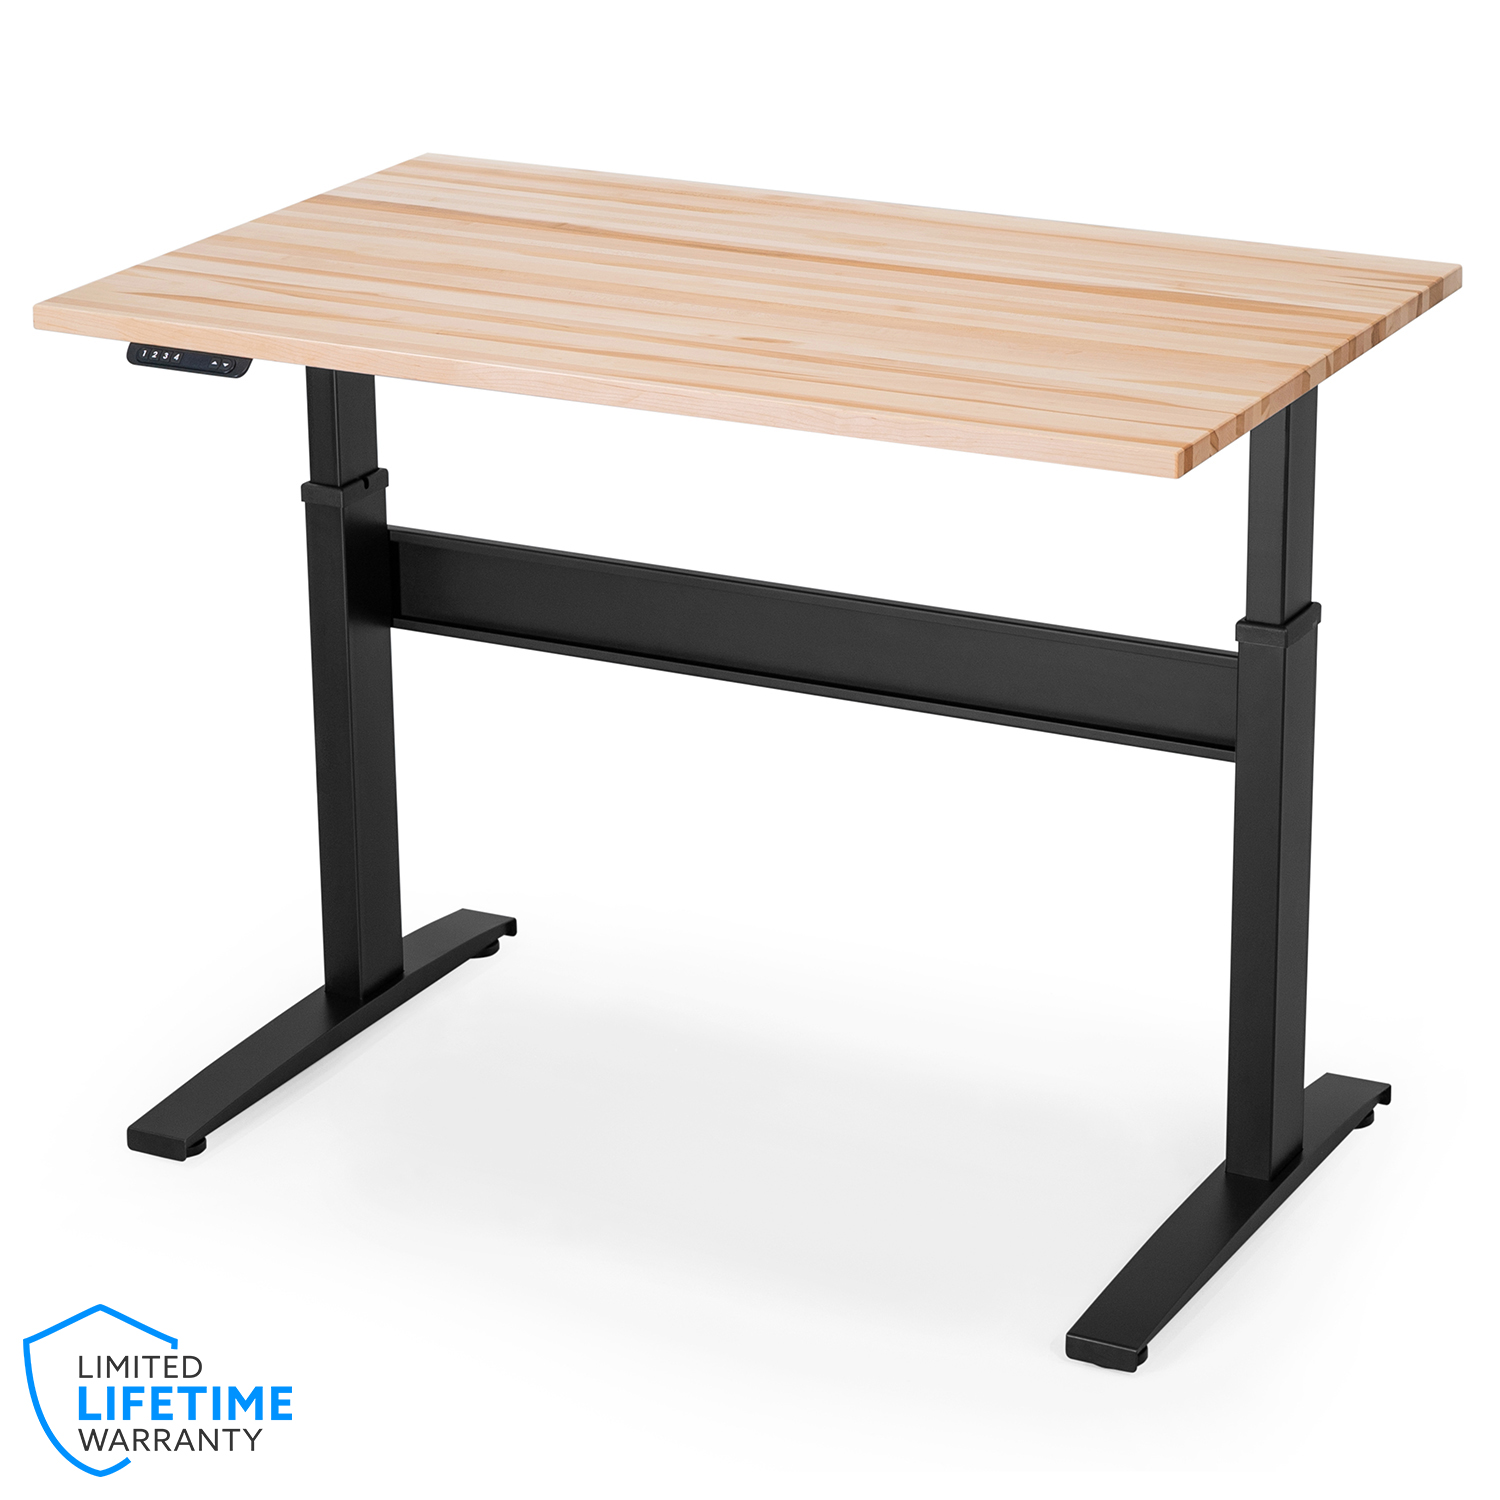 VertDesk v3 Electric Sit Stand Desk - Butcher Block Top w/ Voice Control